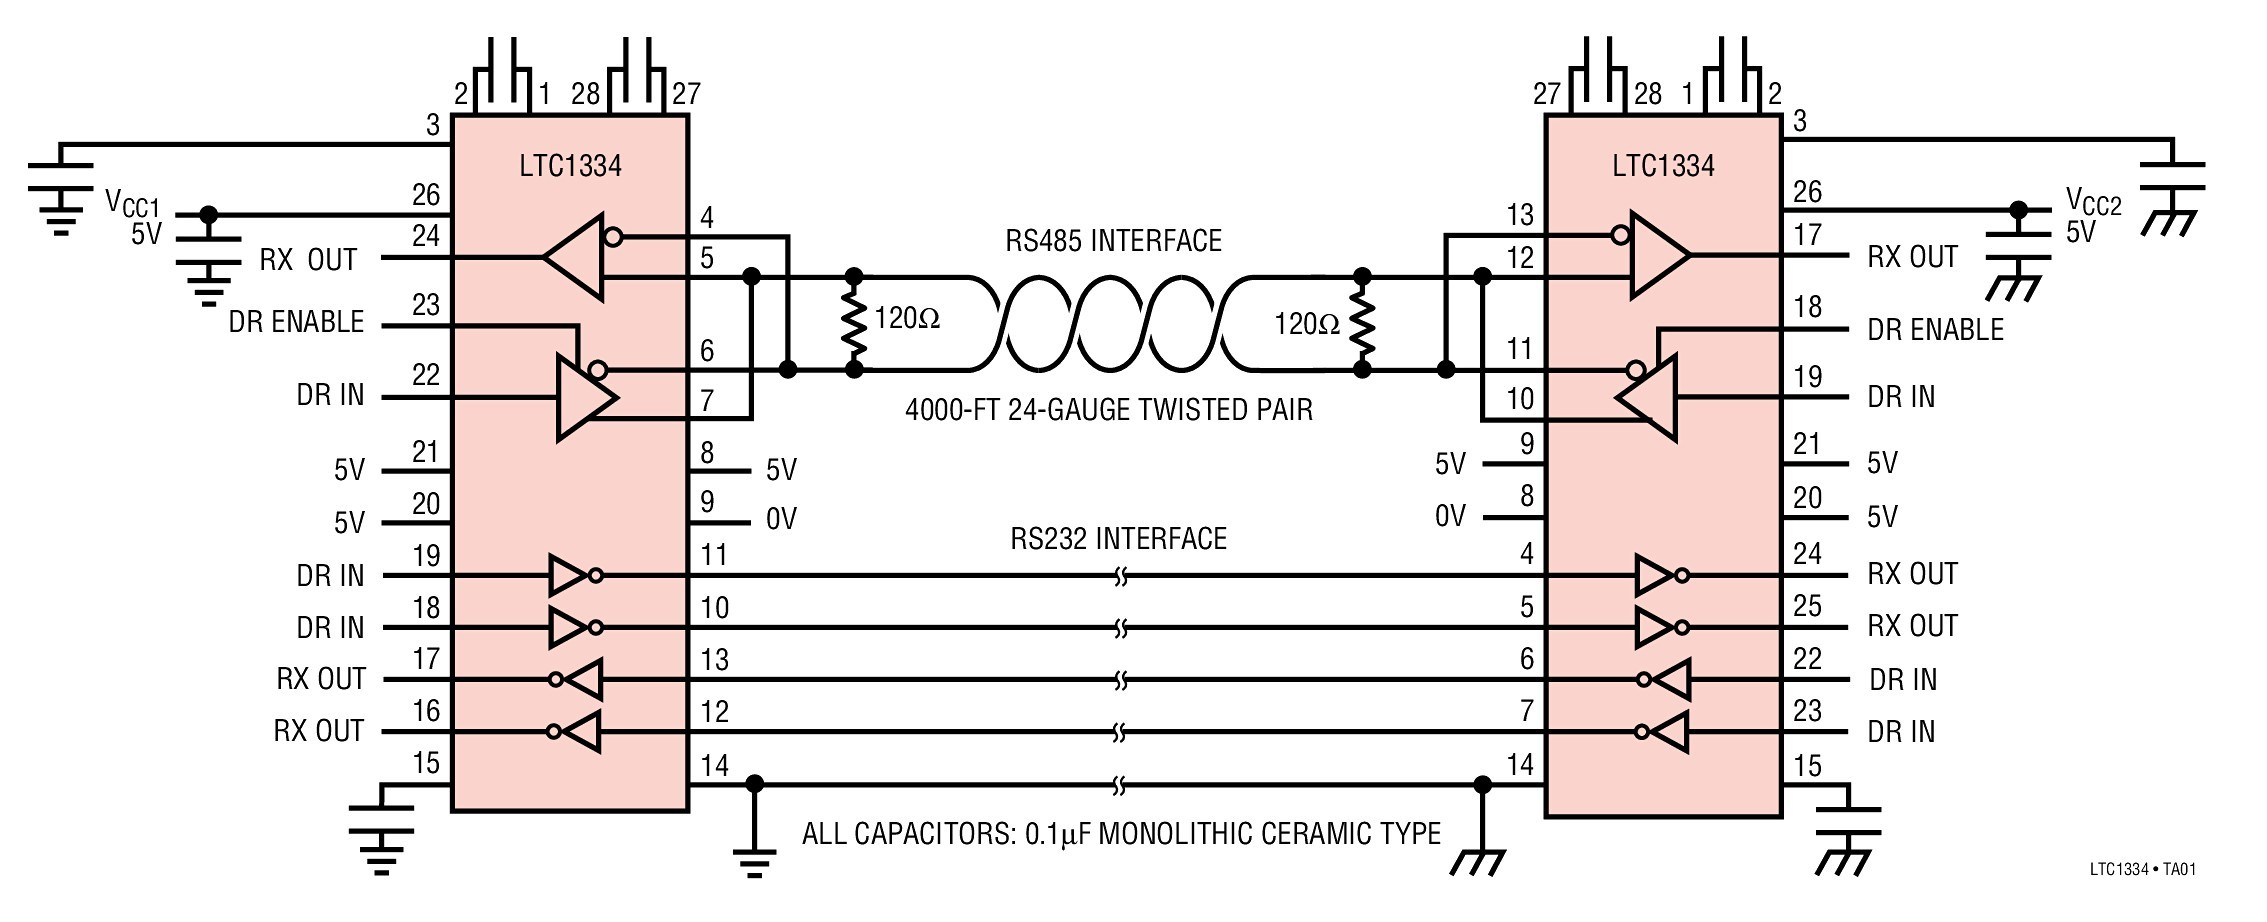 Rs485 To Usb Wiring Diagram | Wiring Library - Rs 485 Wiring Diagram